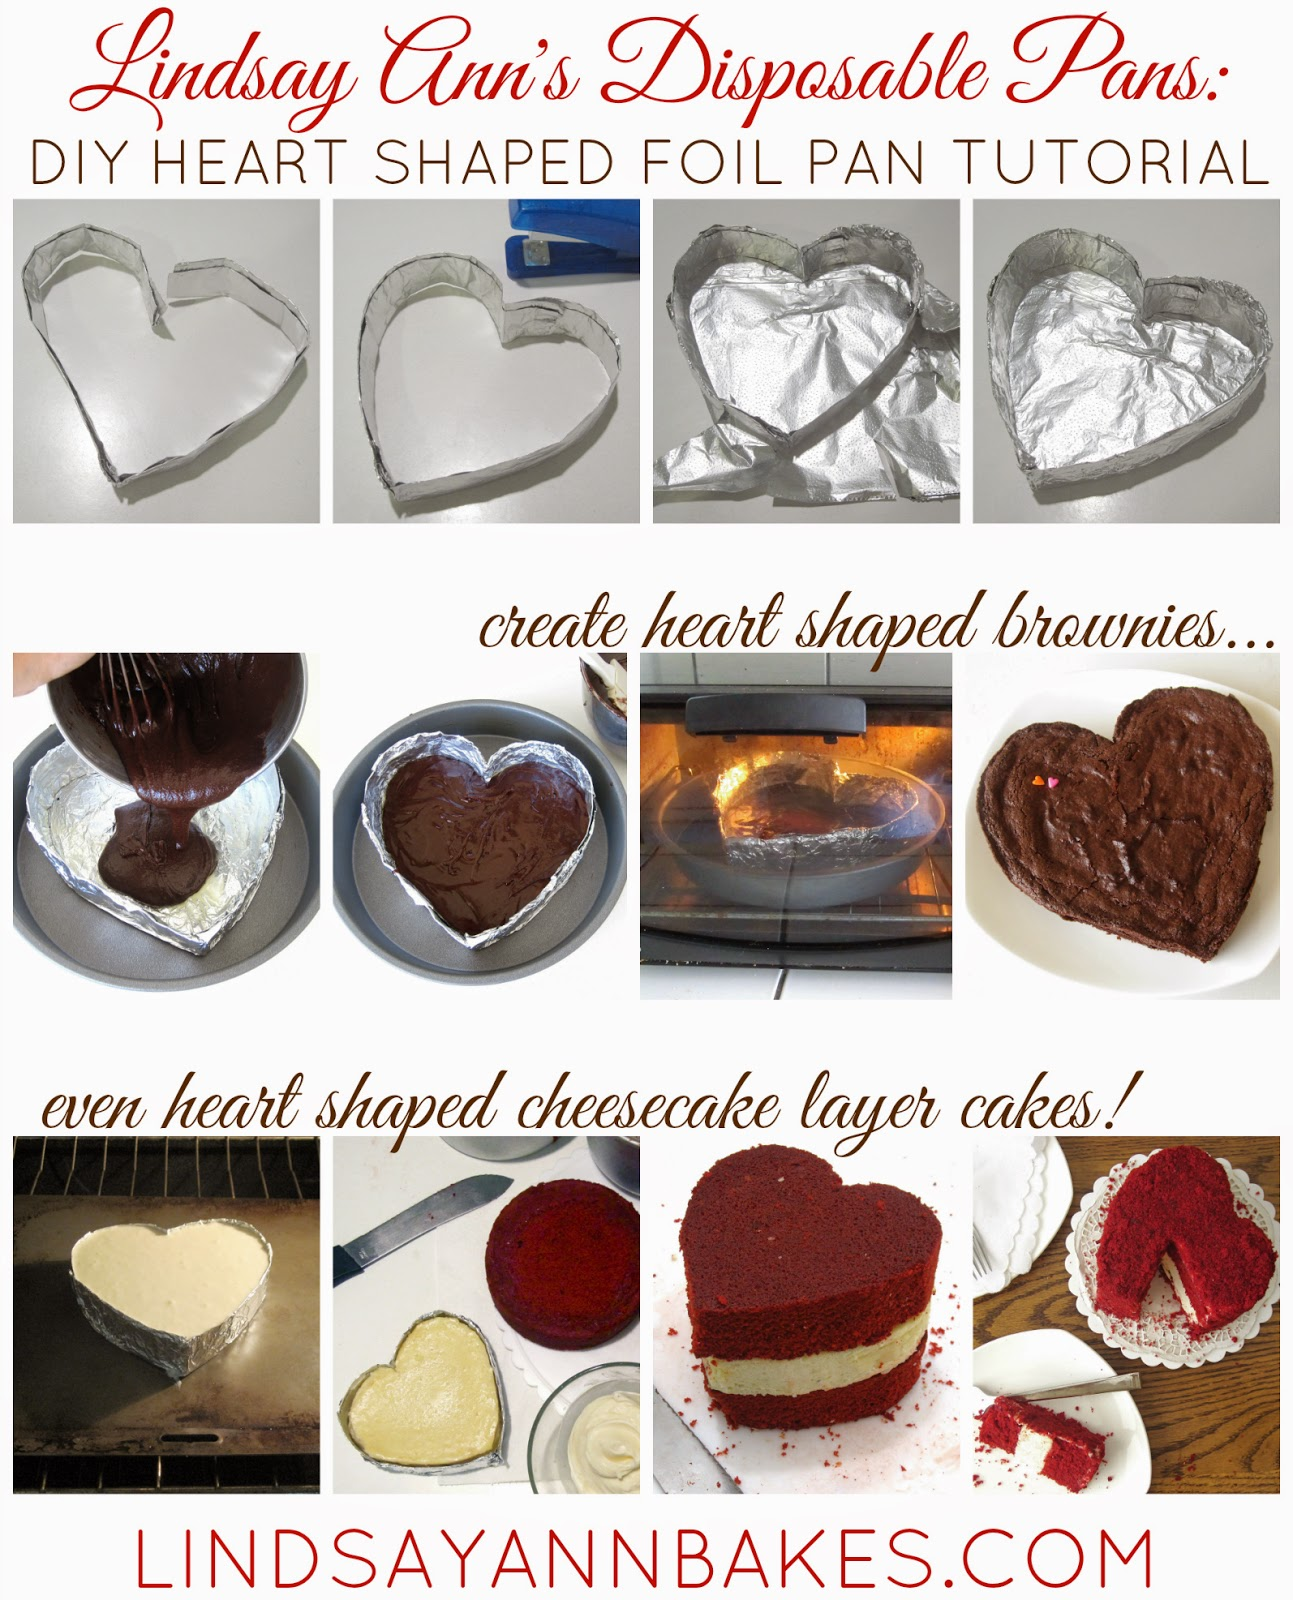 video diy disposable baking pans heart shaped foil pans parchment paper cheesecake pans. Black Bedroom Furniture Sets. Home Design Ideas